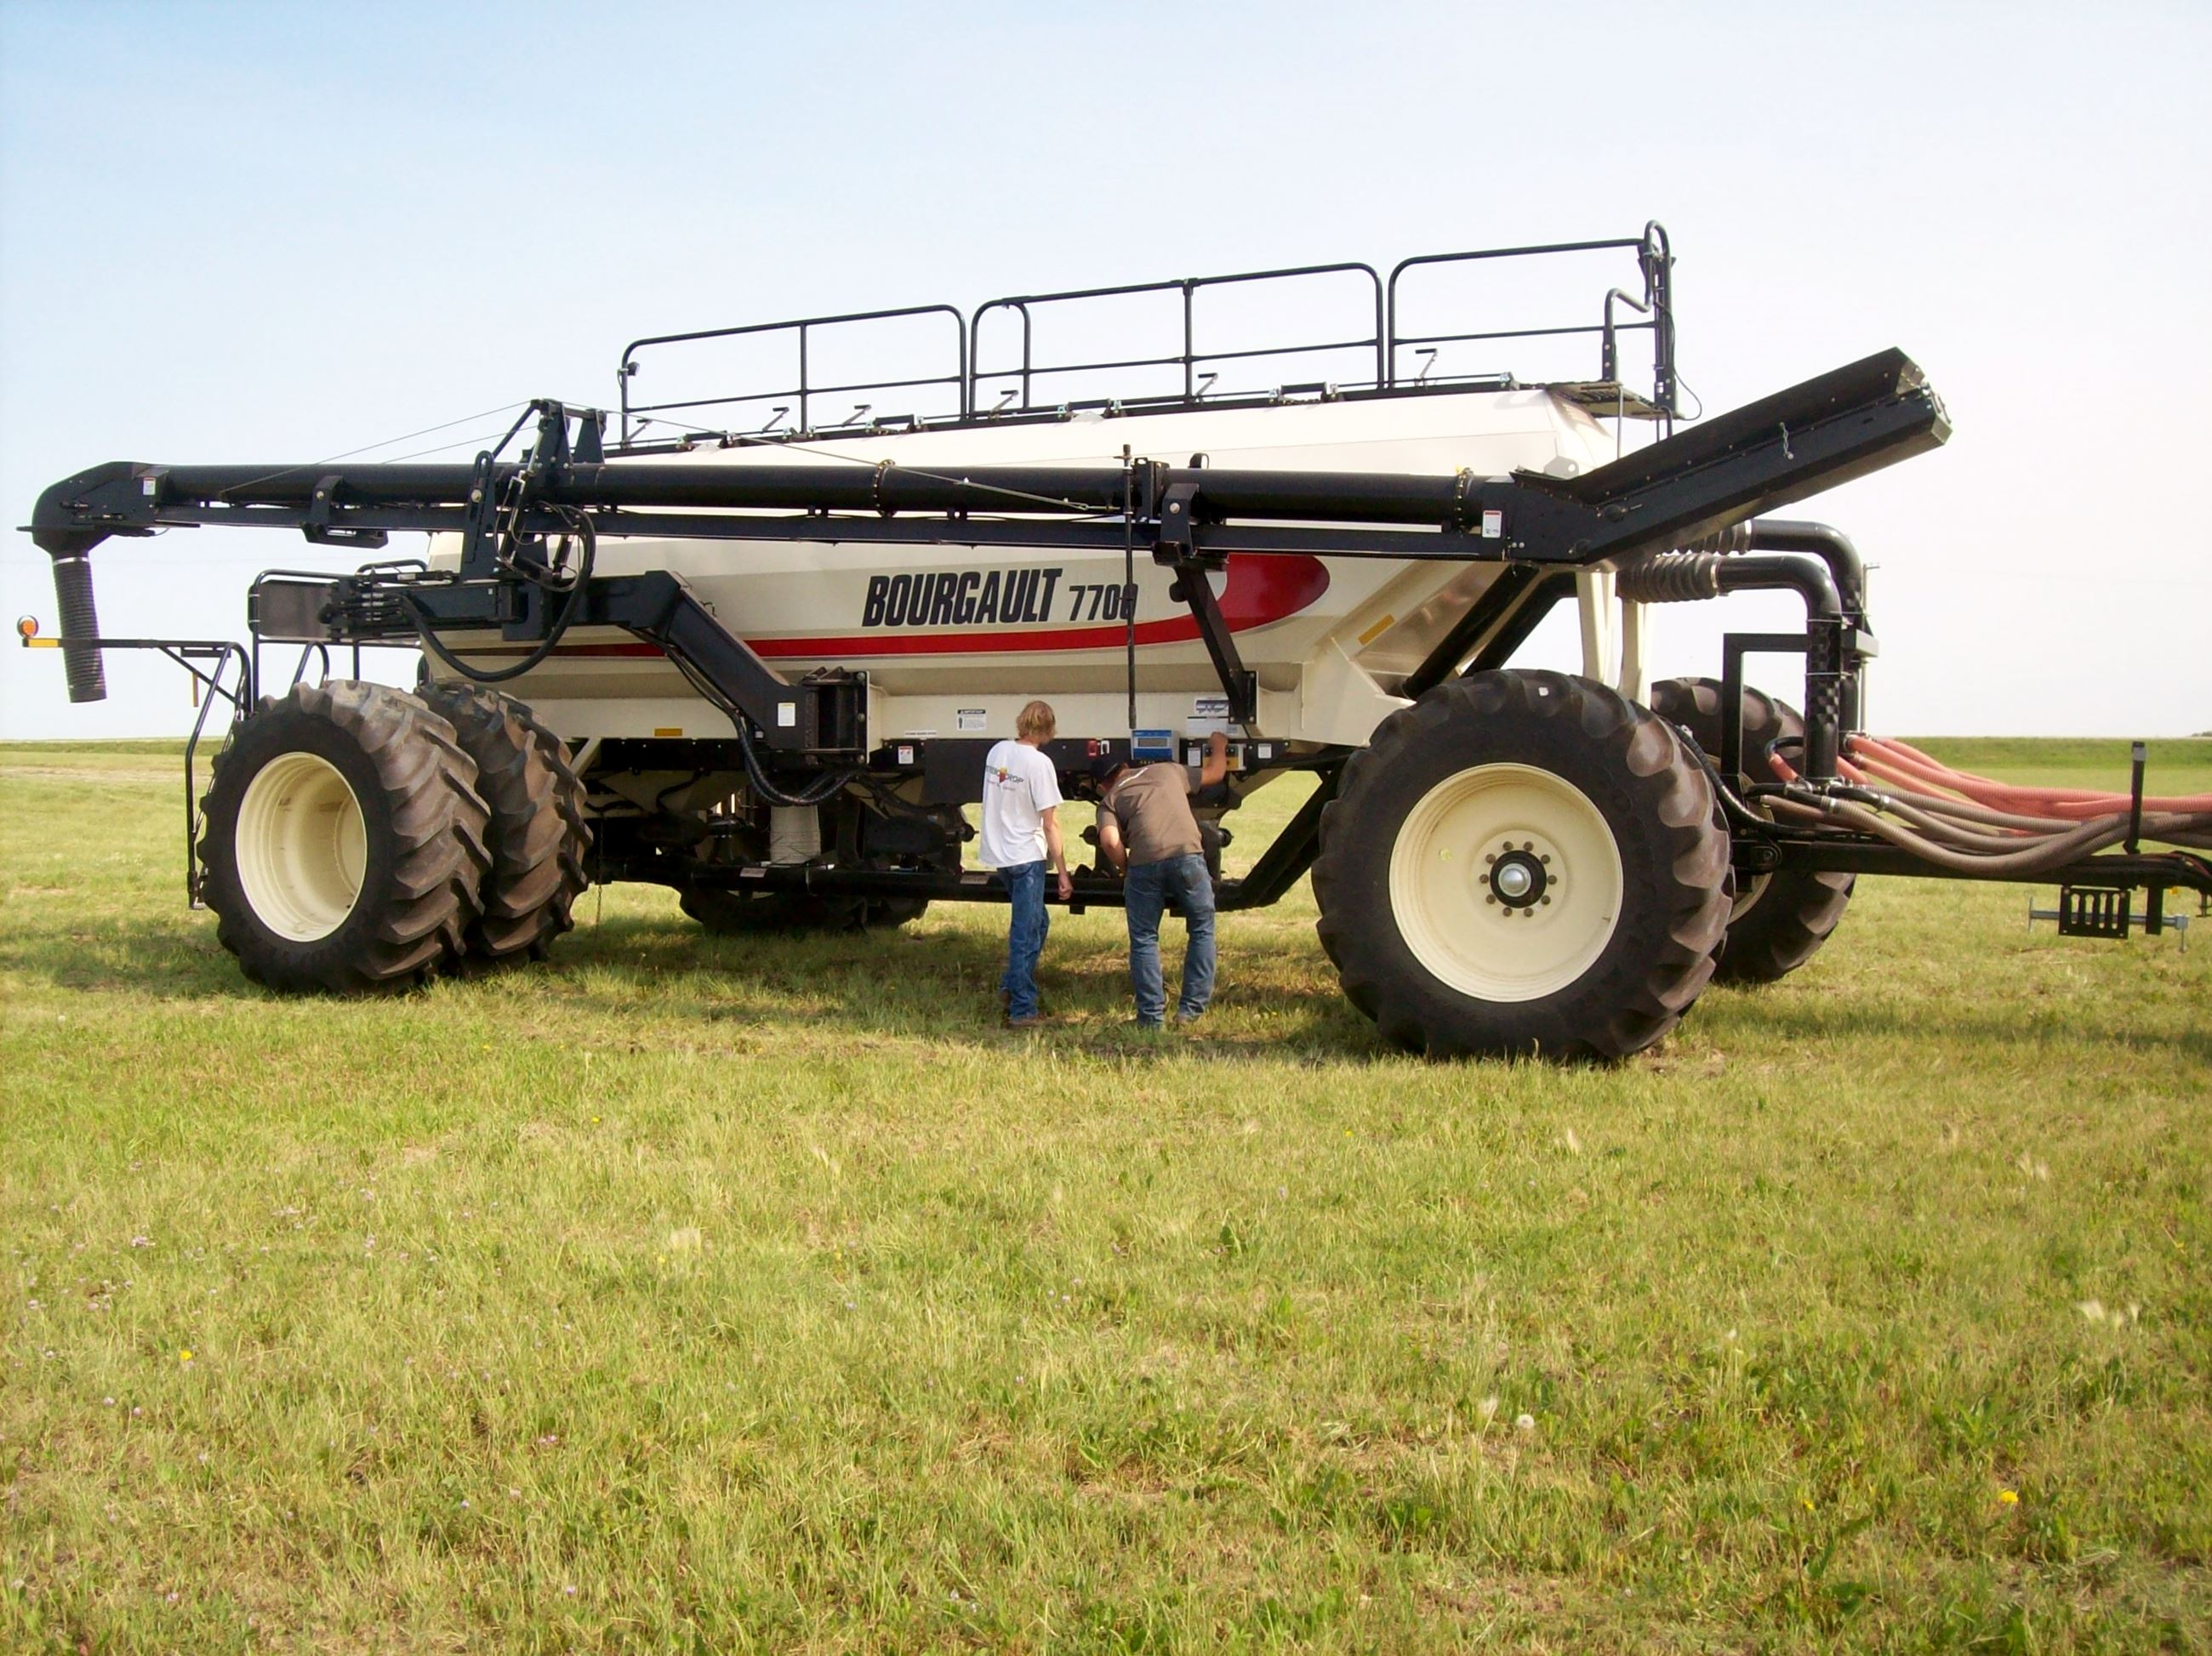 Image of farm equipment